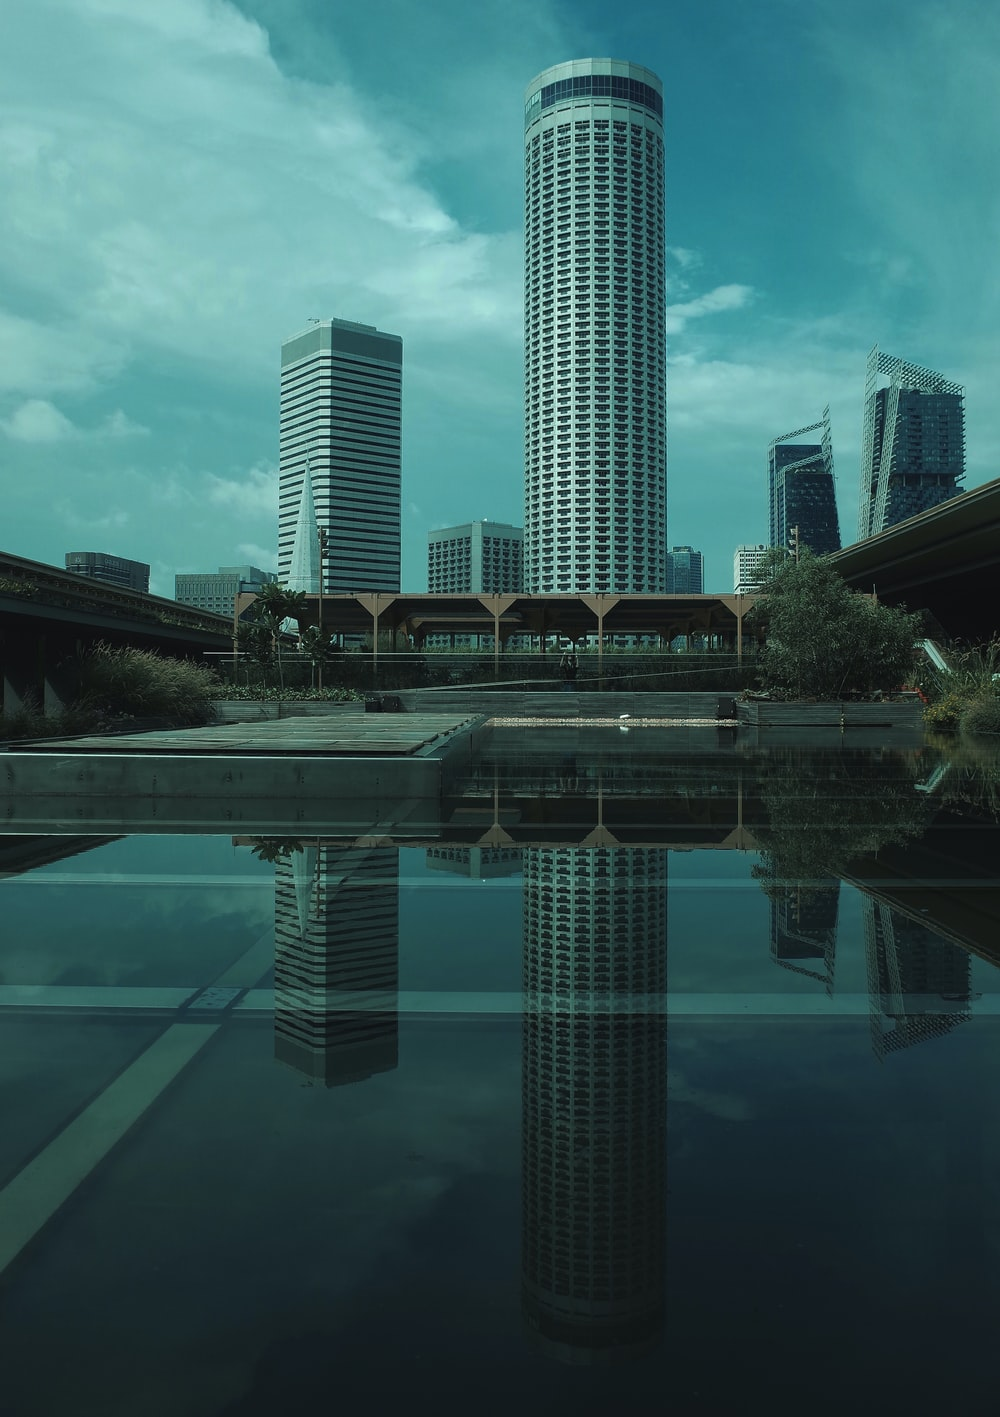 reflection of high rise buildings on mirror floor